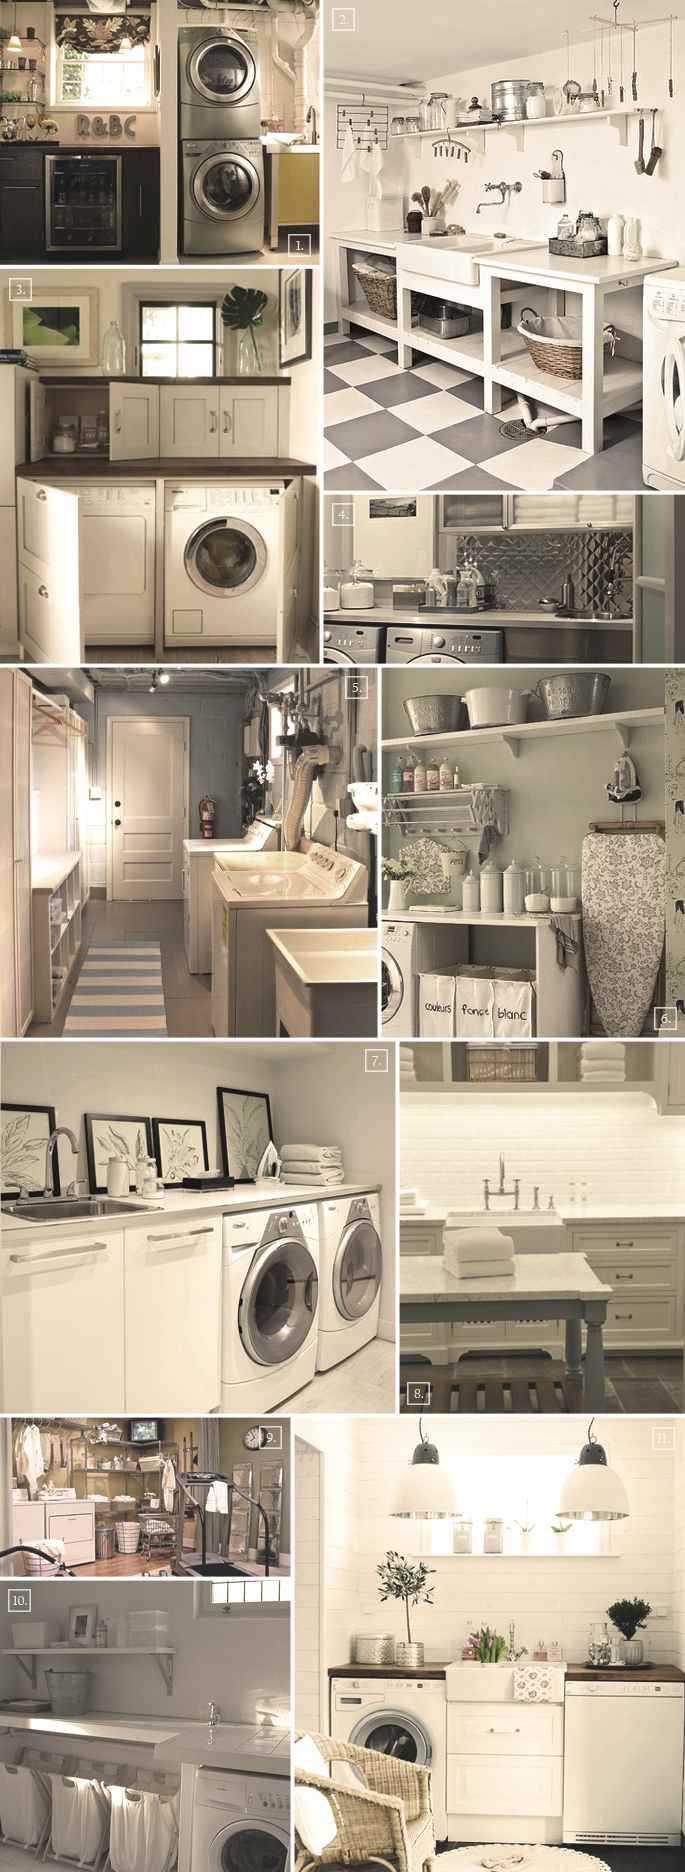 Design Ideas For That Perfect Basement Laundry Room | Home Tree Atlas